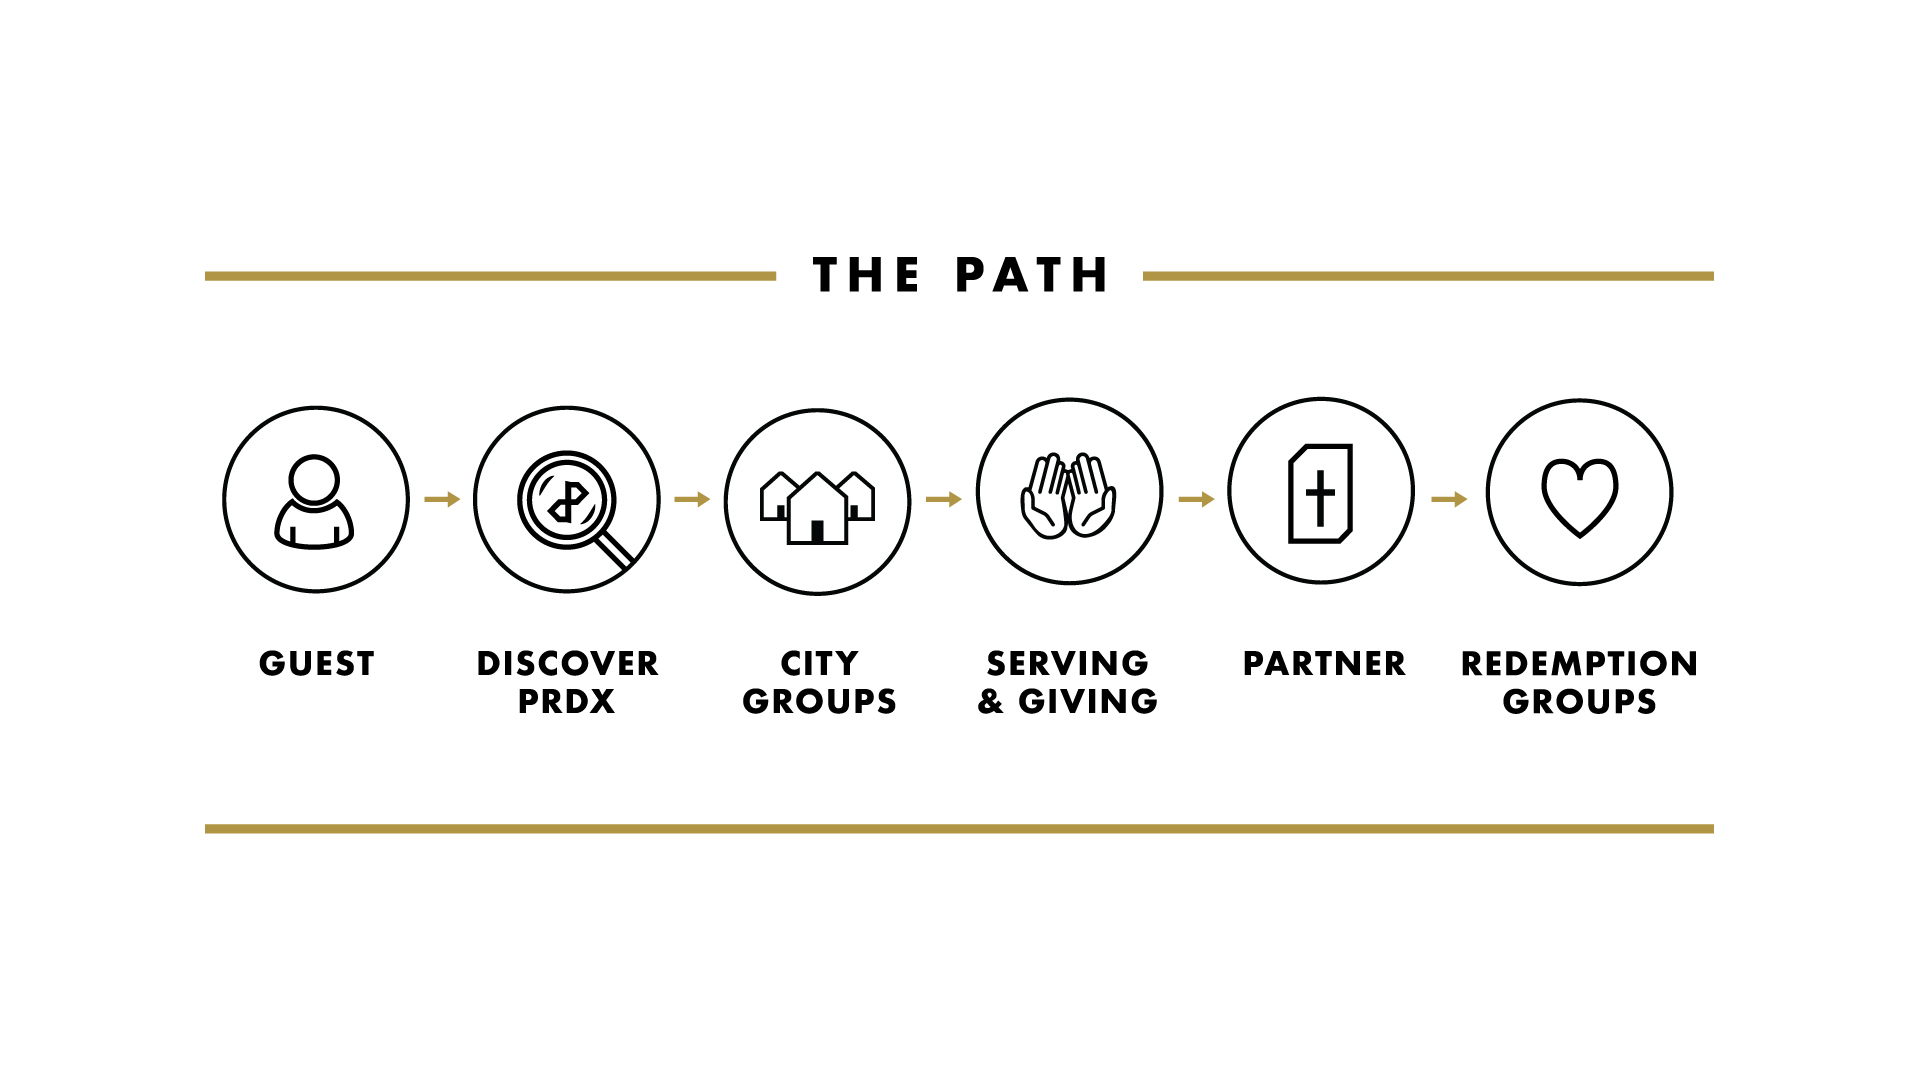 DISCIPLESHIP AT PARADOX - Whether you are a First Time Guest or a Partner with us on mission, there is a path for you to grow and be discipled with the glory and grace of Jesus.